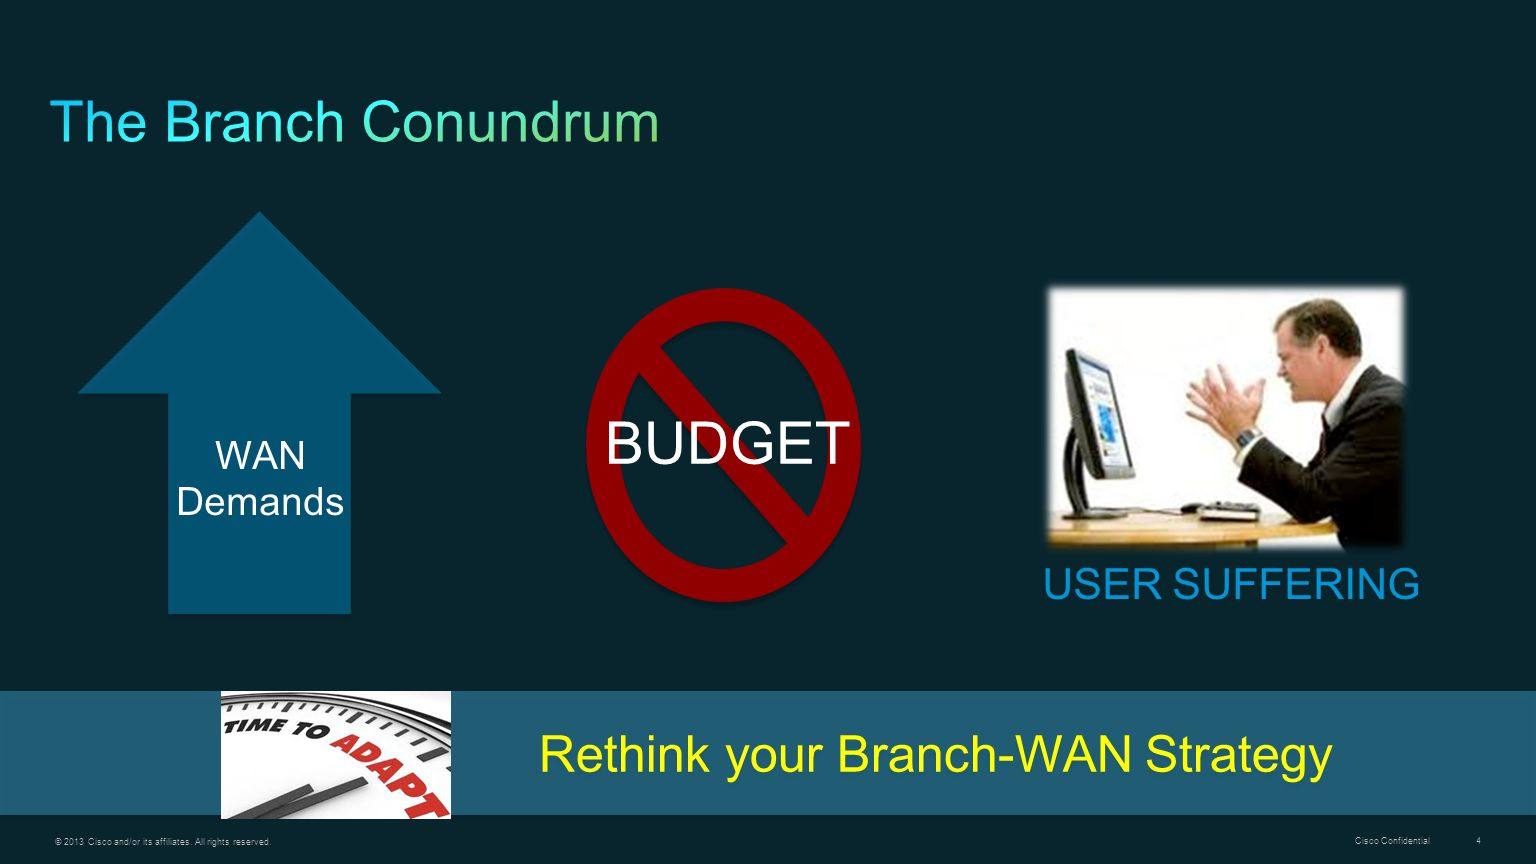 Rethink your Branch-WAN Strategy